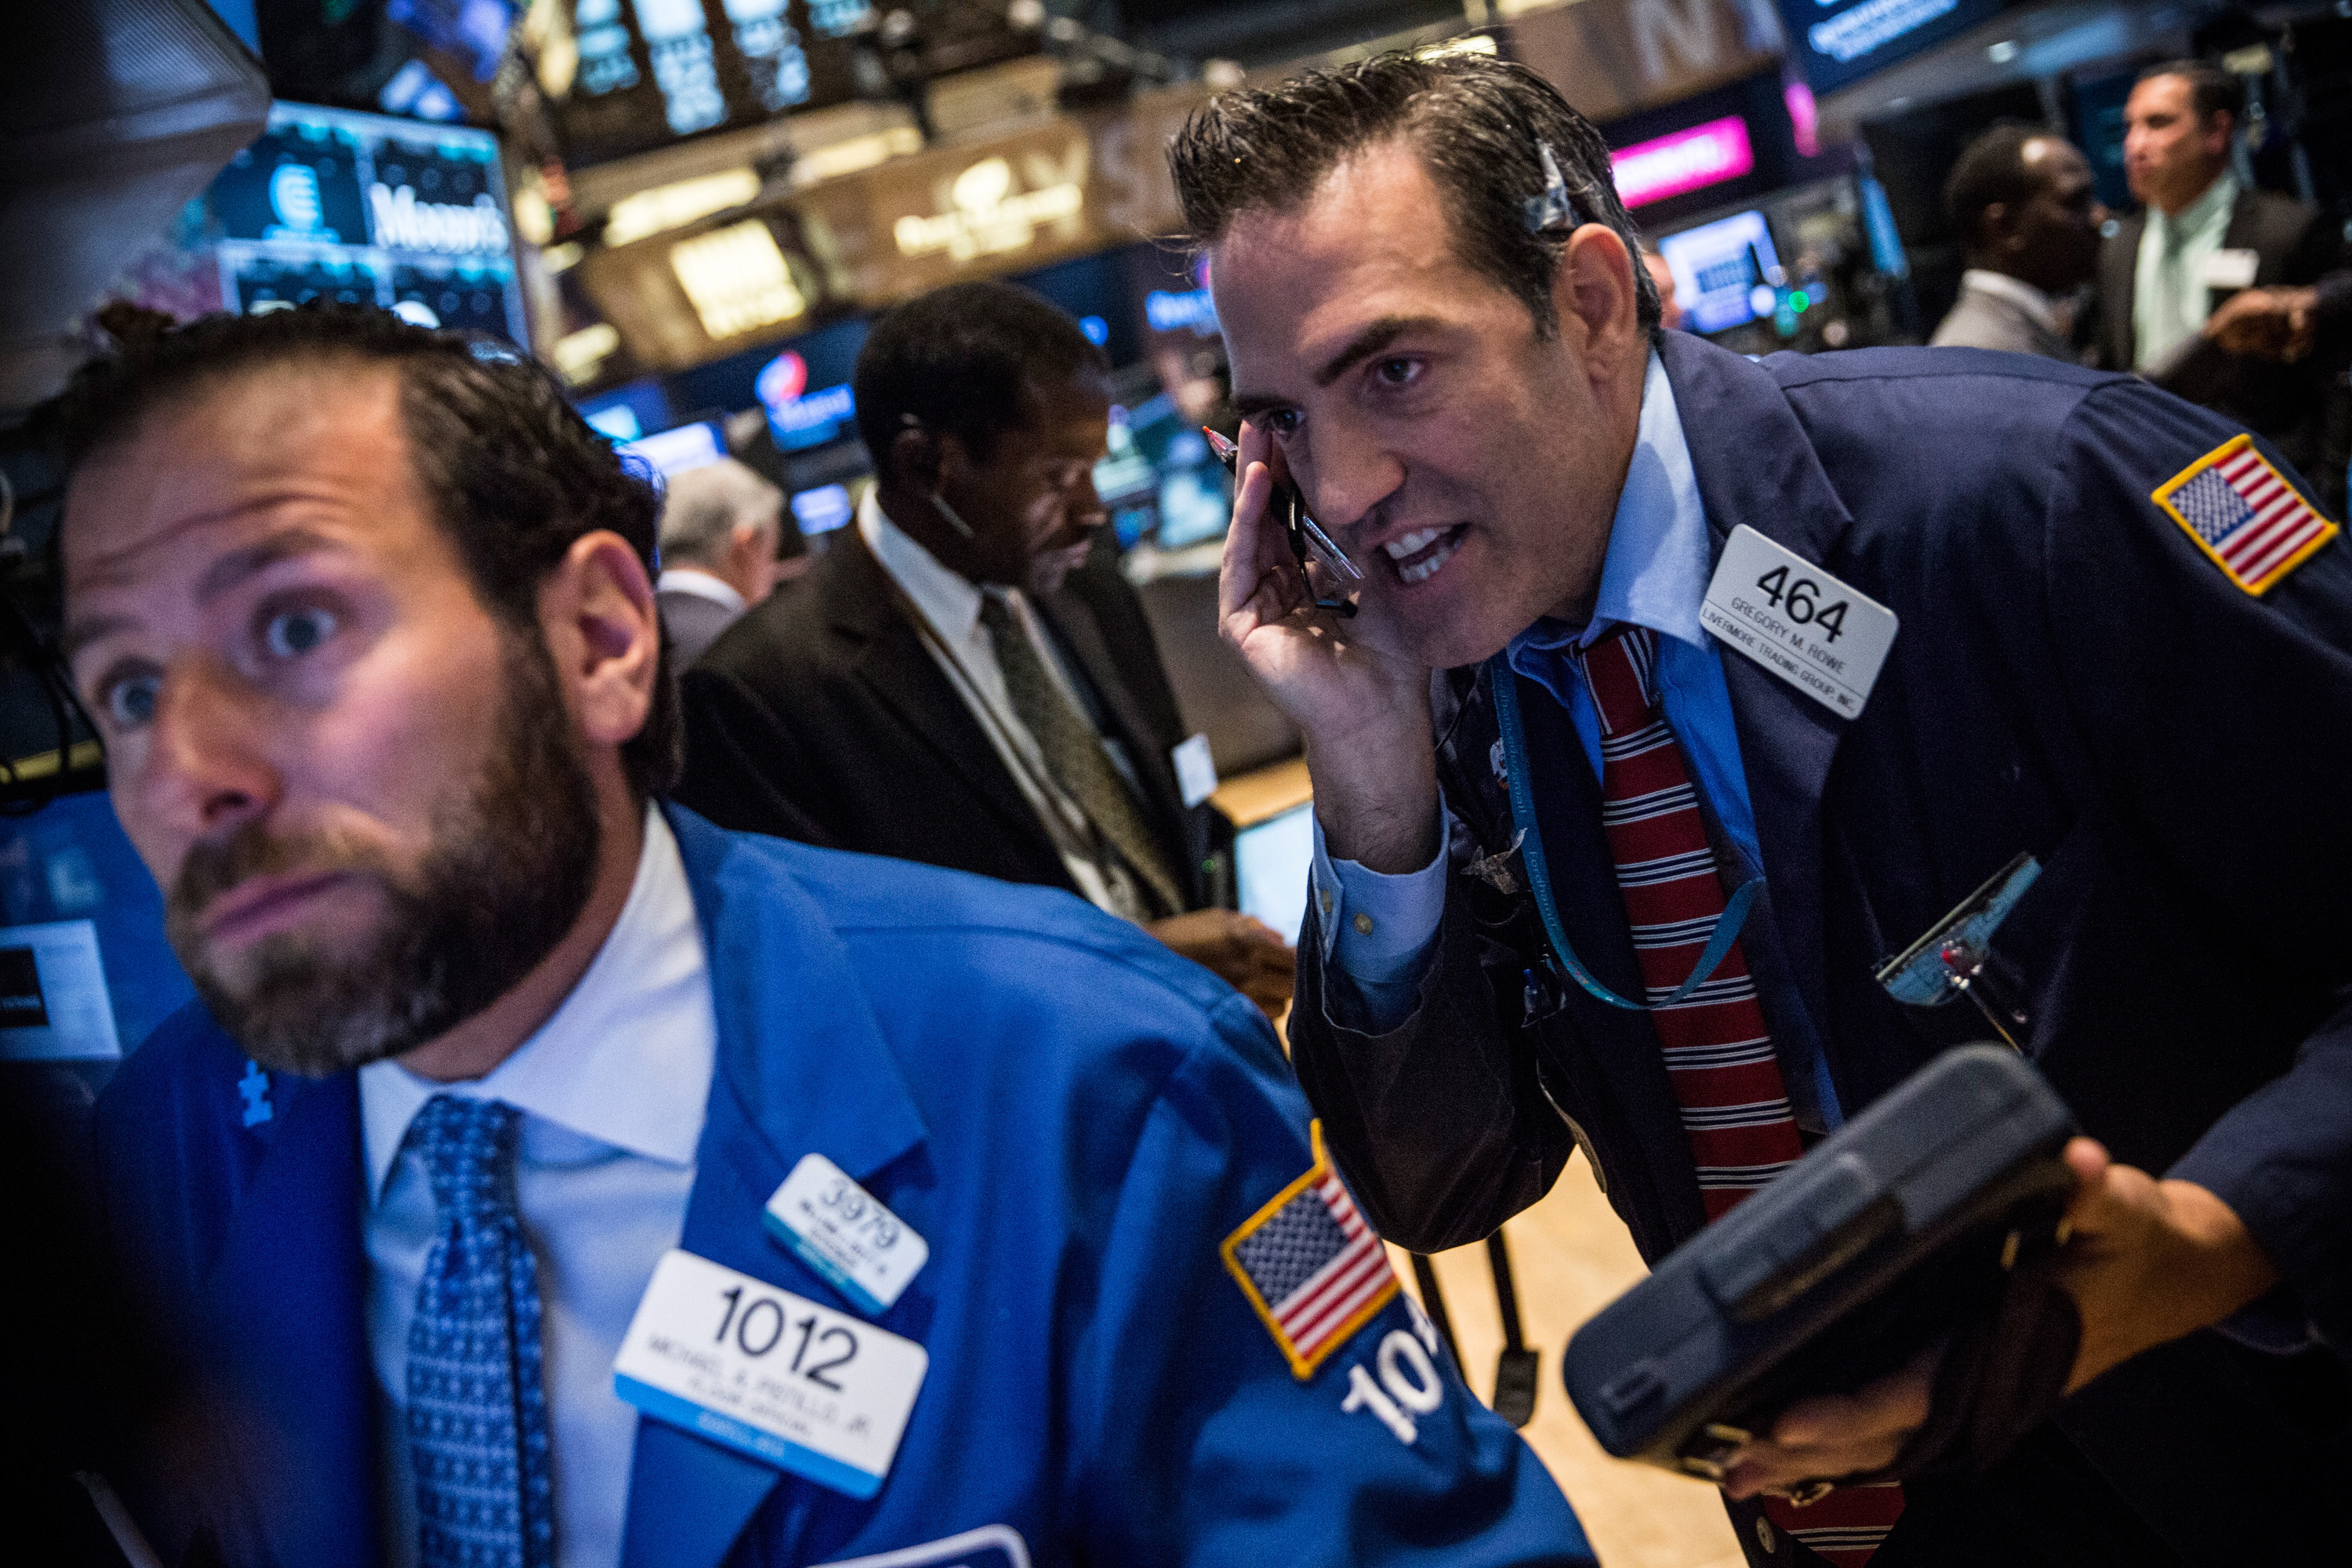 Traders work on the floor of the New York Stock Exchange during the morning of August 27, 2015 in New York City. Dow Jones Industrial Average stocks continued their rally, opening approximately 200 points higher today.